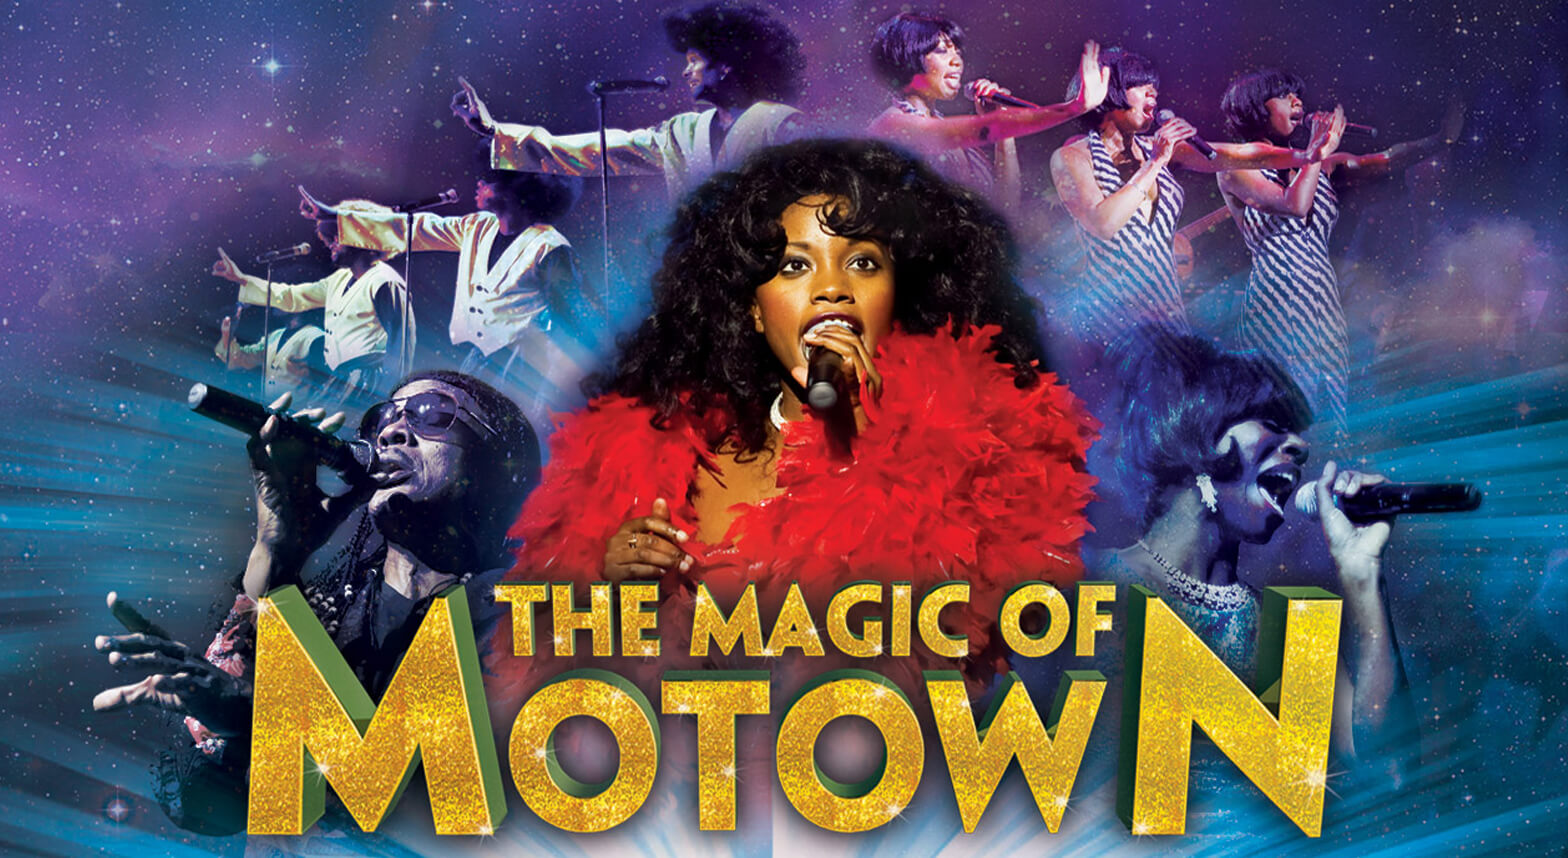 The Magic of Motown steams into Arena Birmingham on 8 November 2019